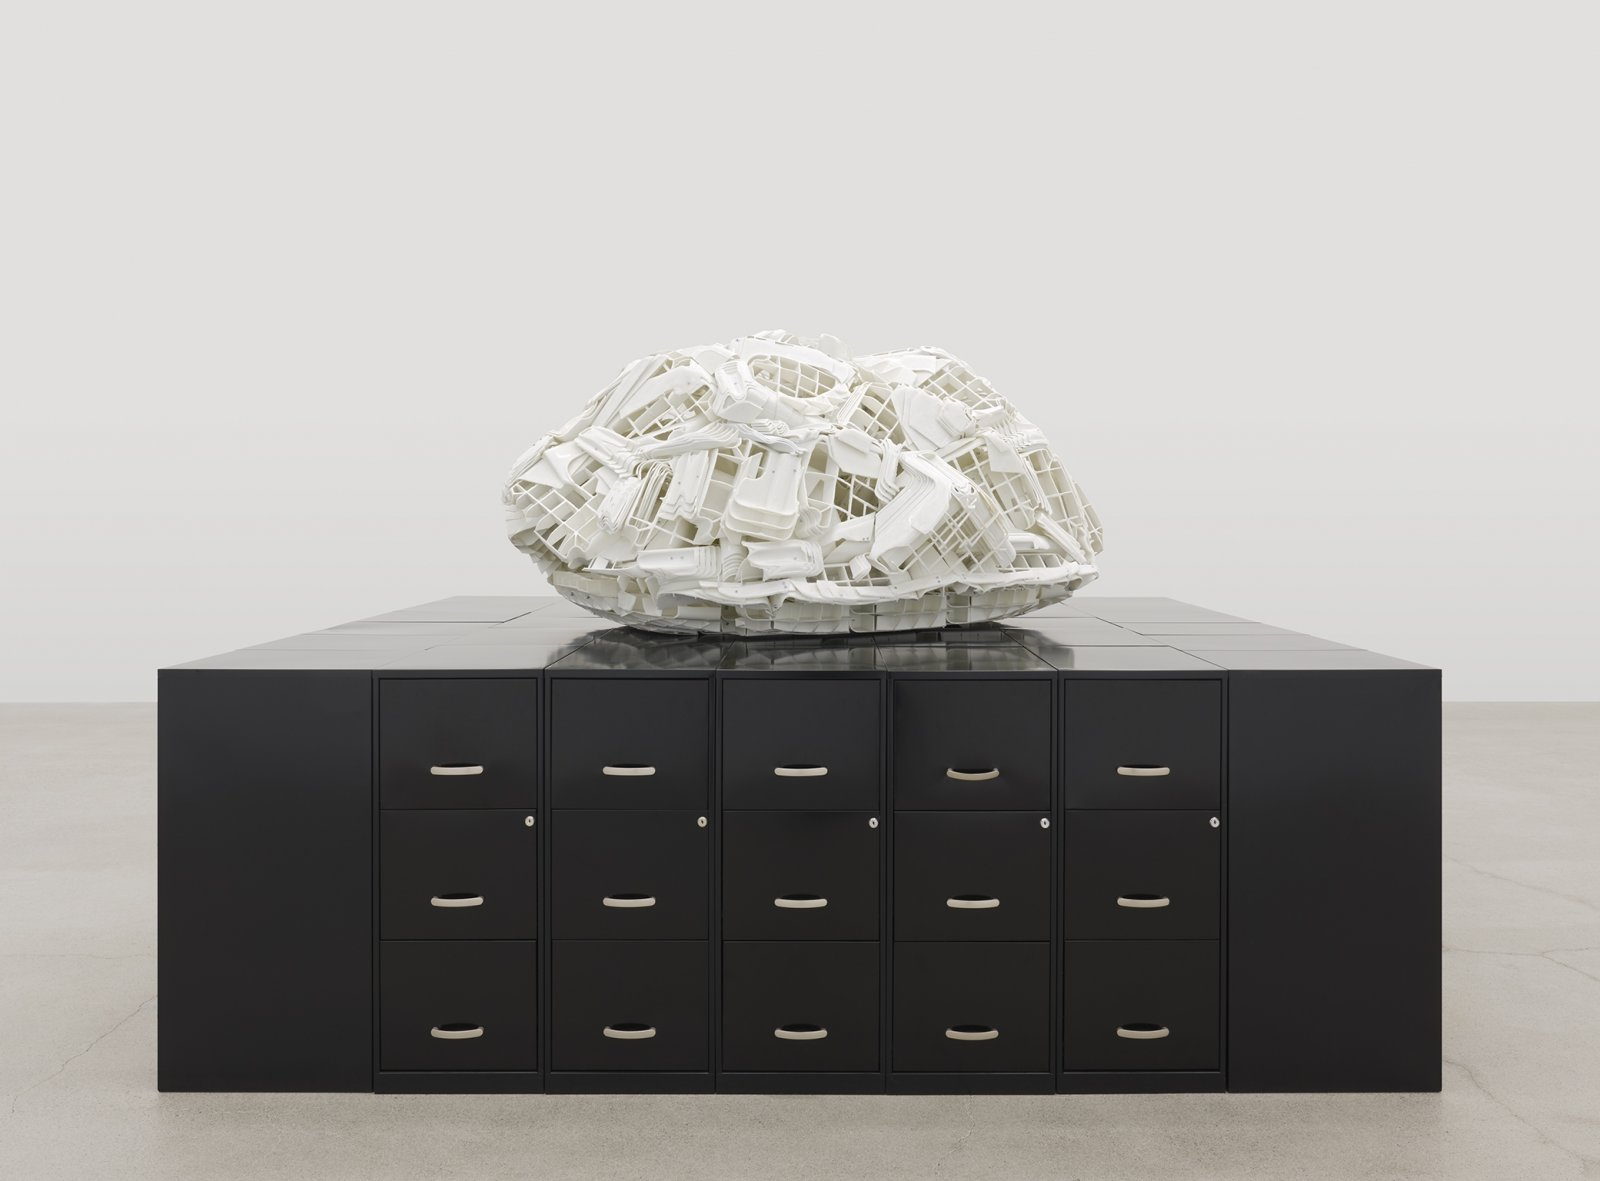 Brian Jungen, Tombstone, 2019, rubbermaid step stools, filing cabinets, 69 x 107 x 86 in. (174 x 272 x 217 cm)